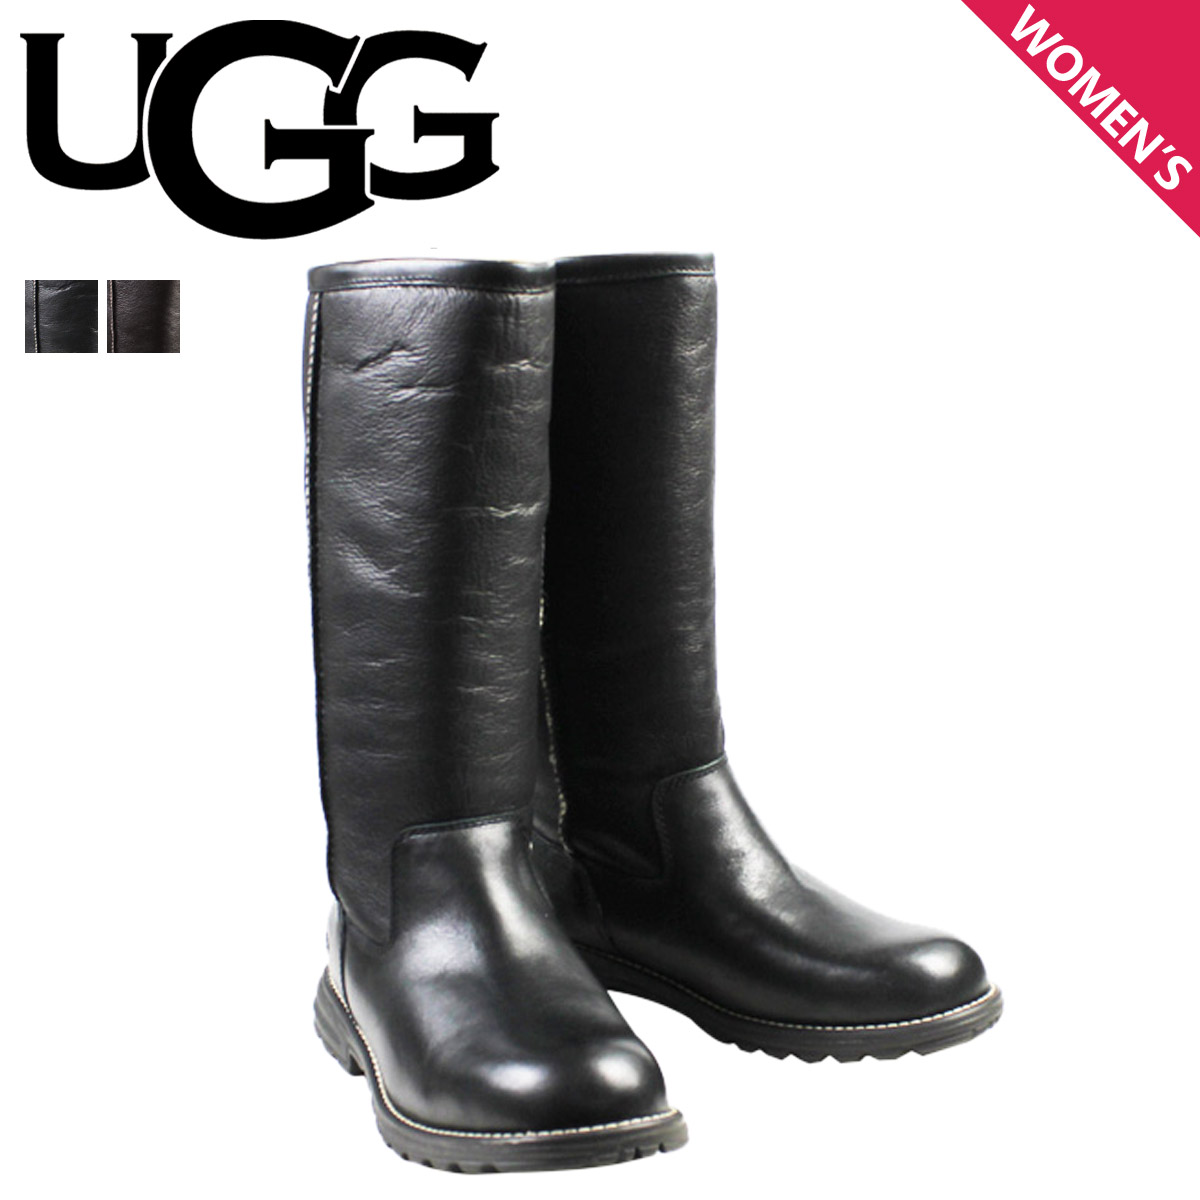 UGG UGG Brooks tall Shearling boots WOMENS BROOKS TALL 5490 Sheepskin ladies